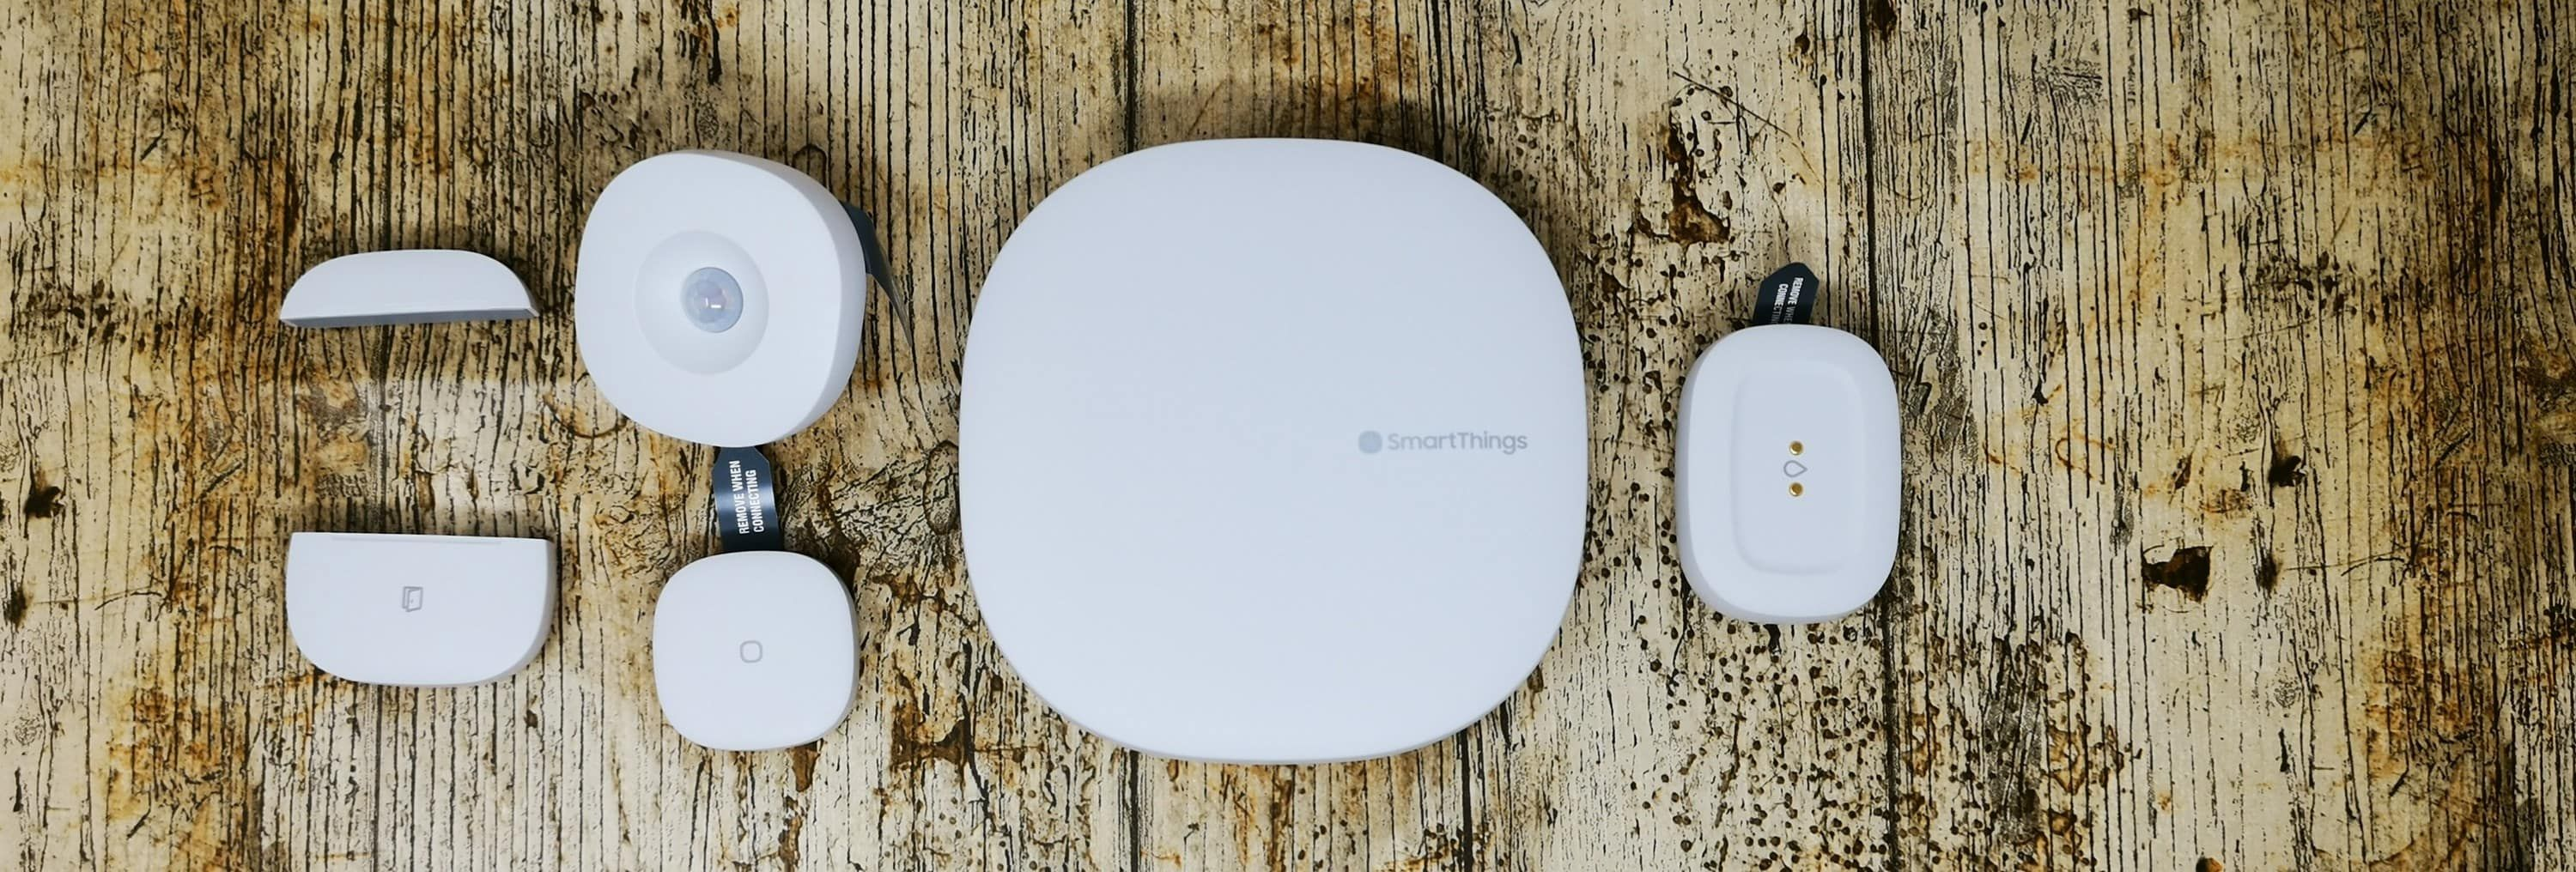 Samsung SmartThings Review 2018 V3 Hub and sensors